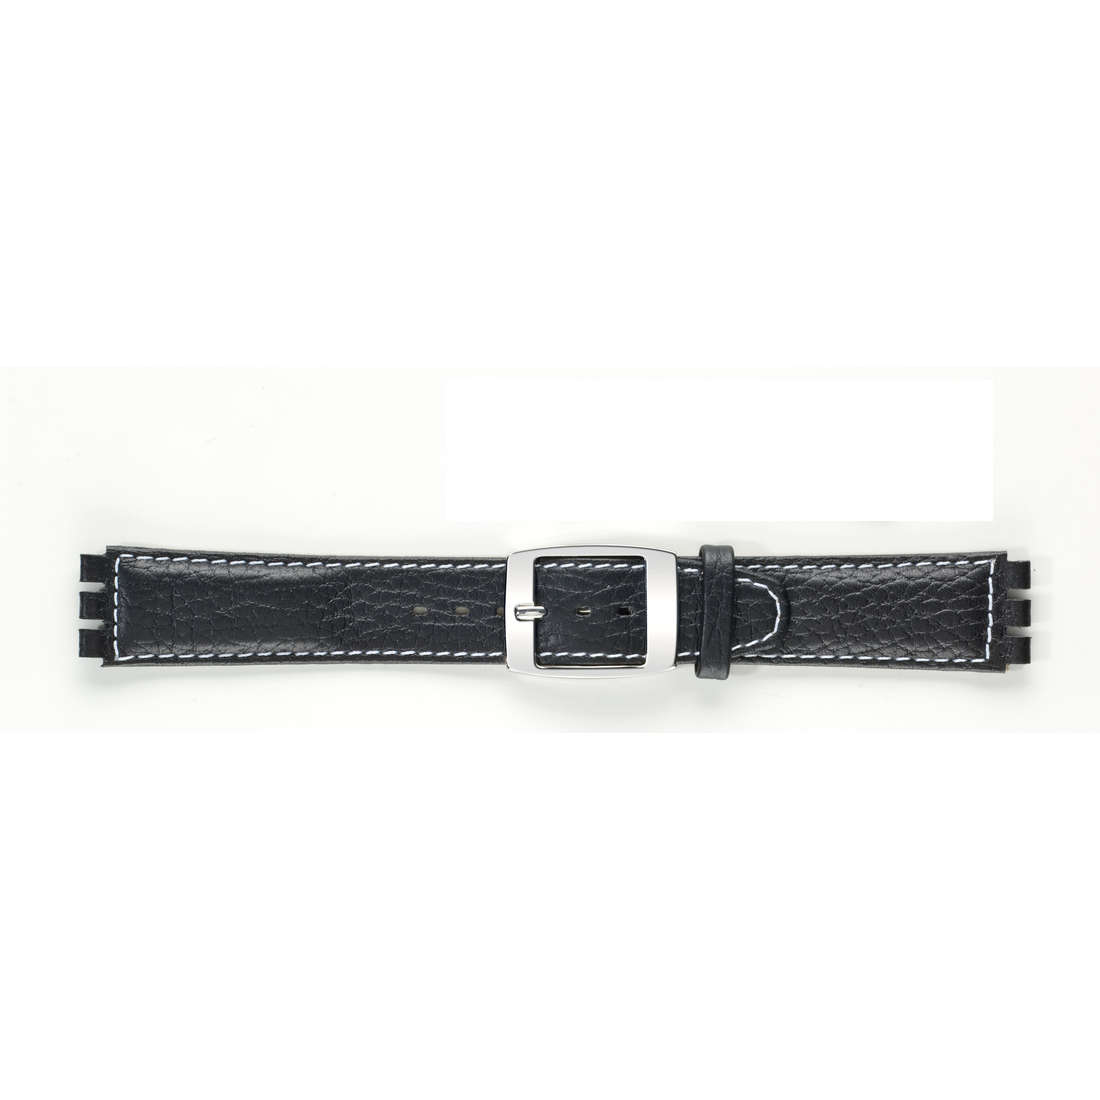 watch watch bands watch straps man Morellato Swatch A01U2740640776MO17